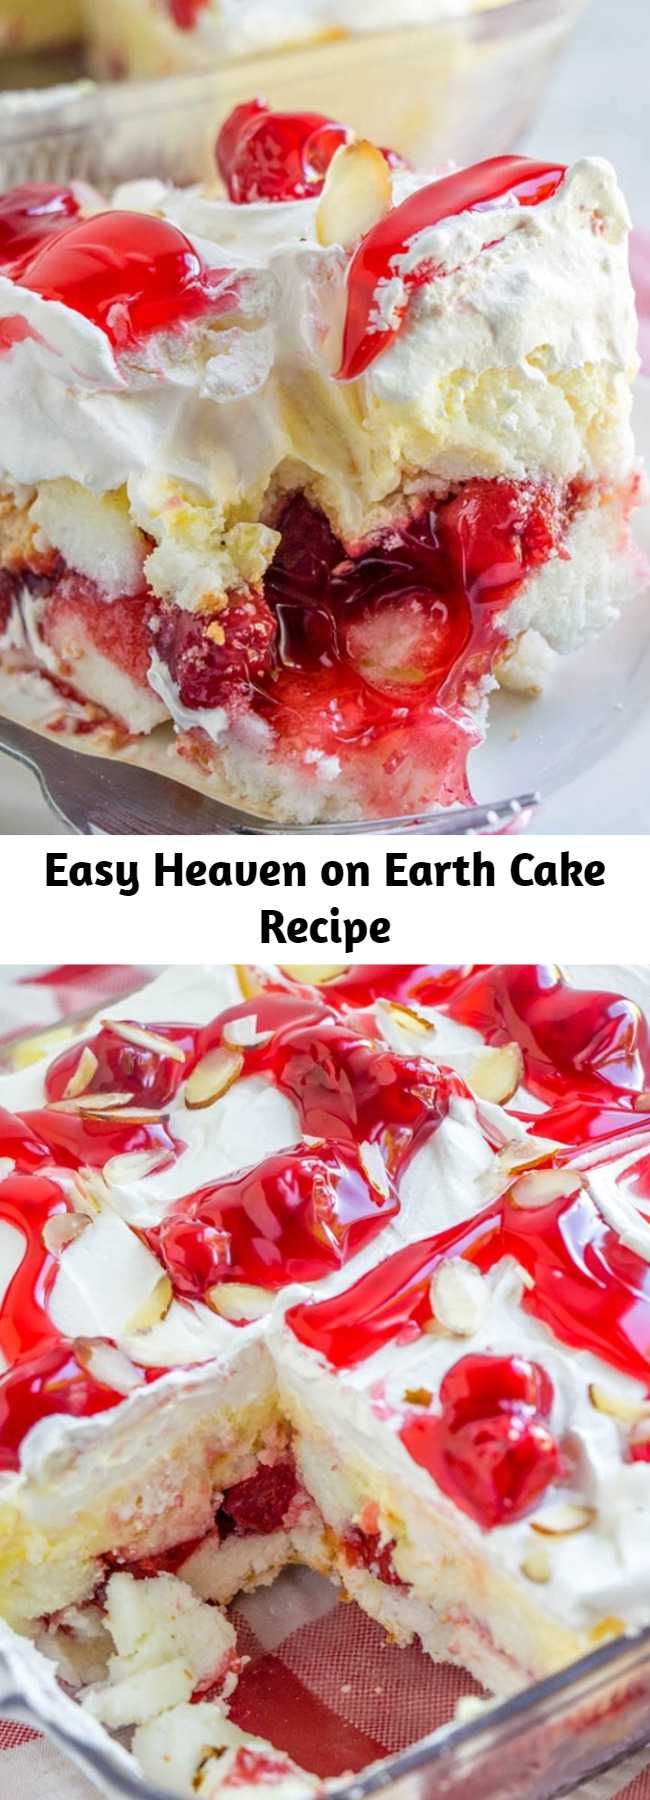 Easy Heaven on Earth Cake Recipe - Heaven on Earth Cake with delicious layers of angel cake, sour cream pudding, cherry pie filling, whipped topping, and almonds. Creamy and decadent, this cherry trifle is a sure crowd pleaser! #dessert #nobake #iceboxcake #triflecake #refrigeratorcake #cherries #easyrecipe #sweets